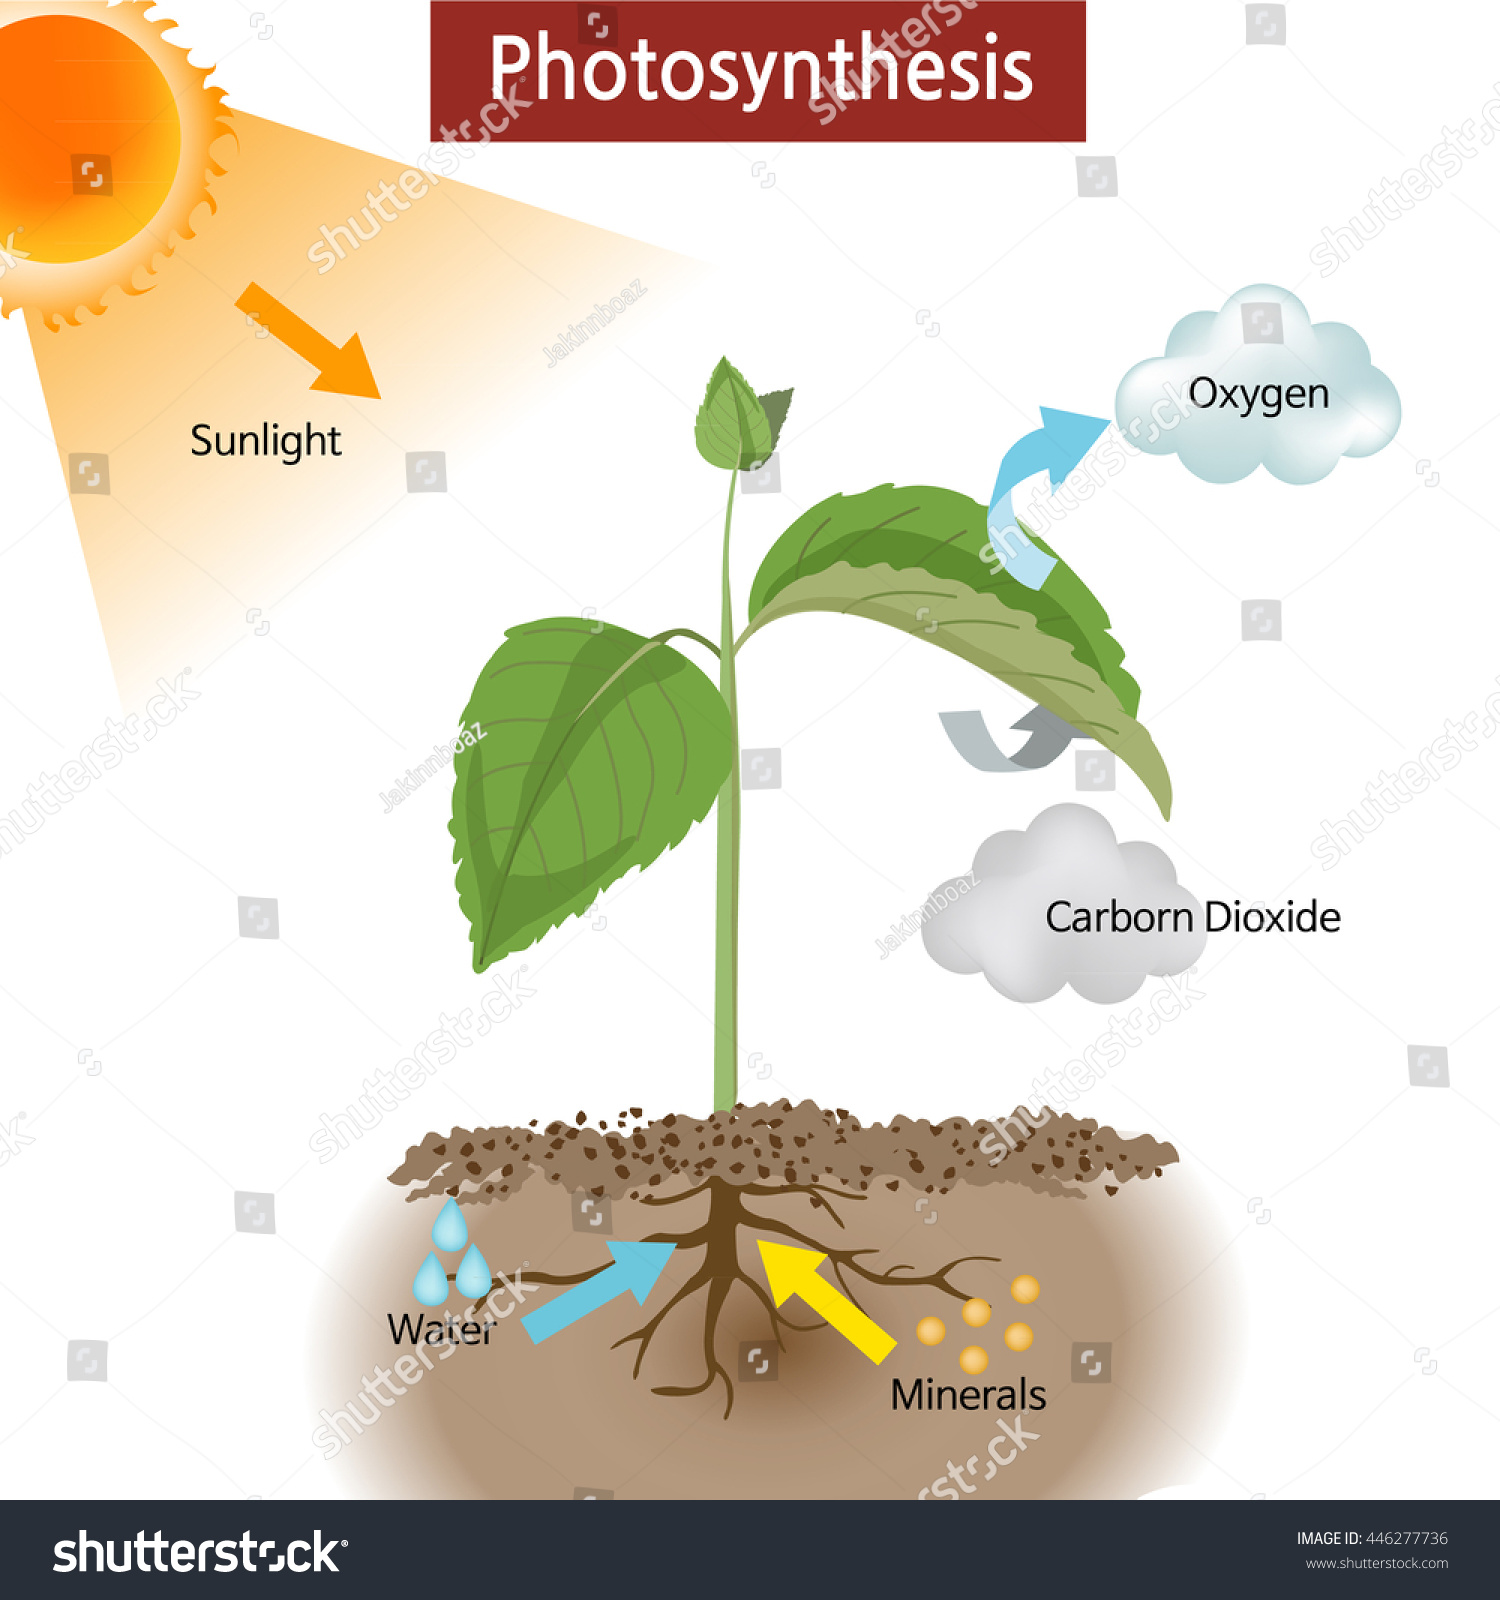 A Diagram Showing How Photosynthesis Works On Plants Stock Vector Illustration